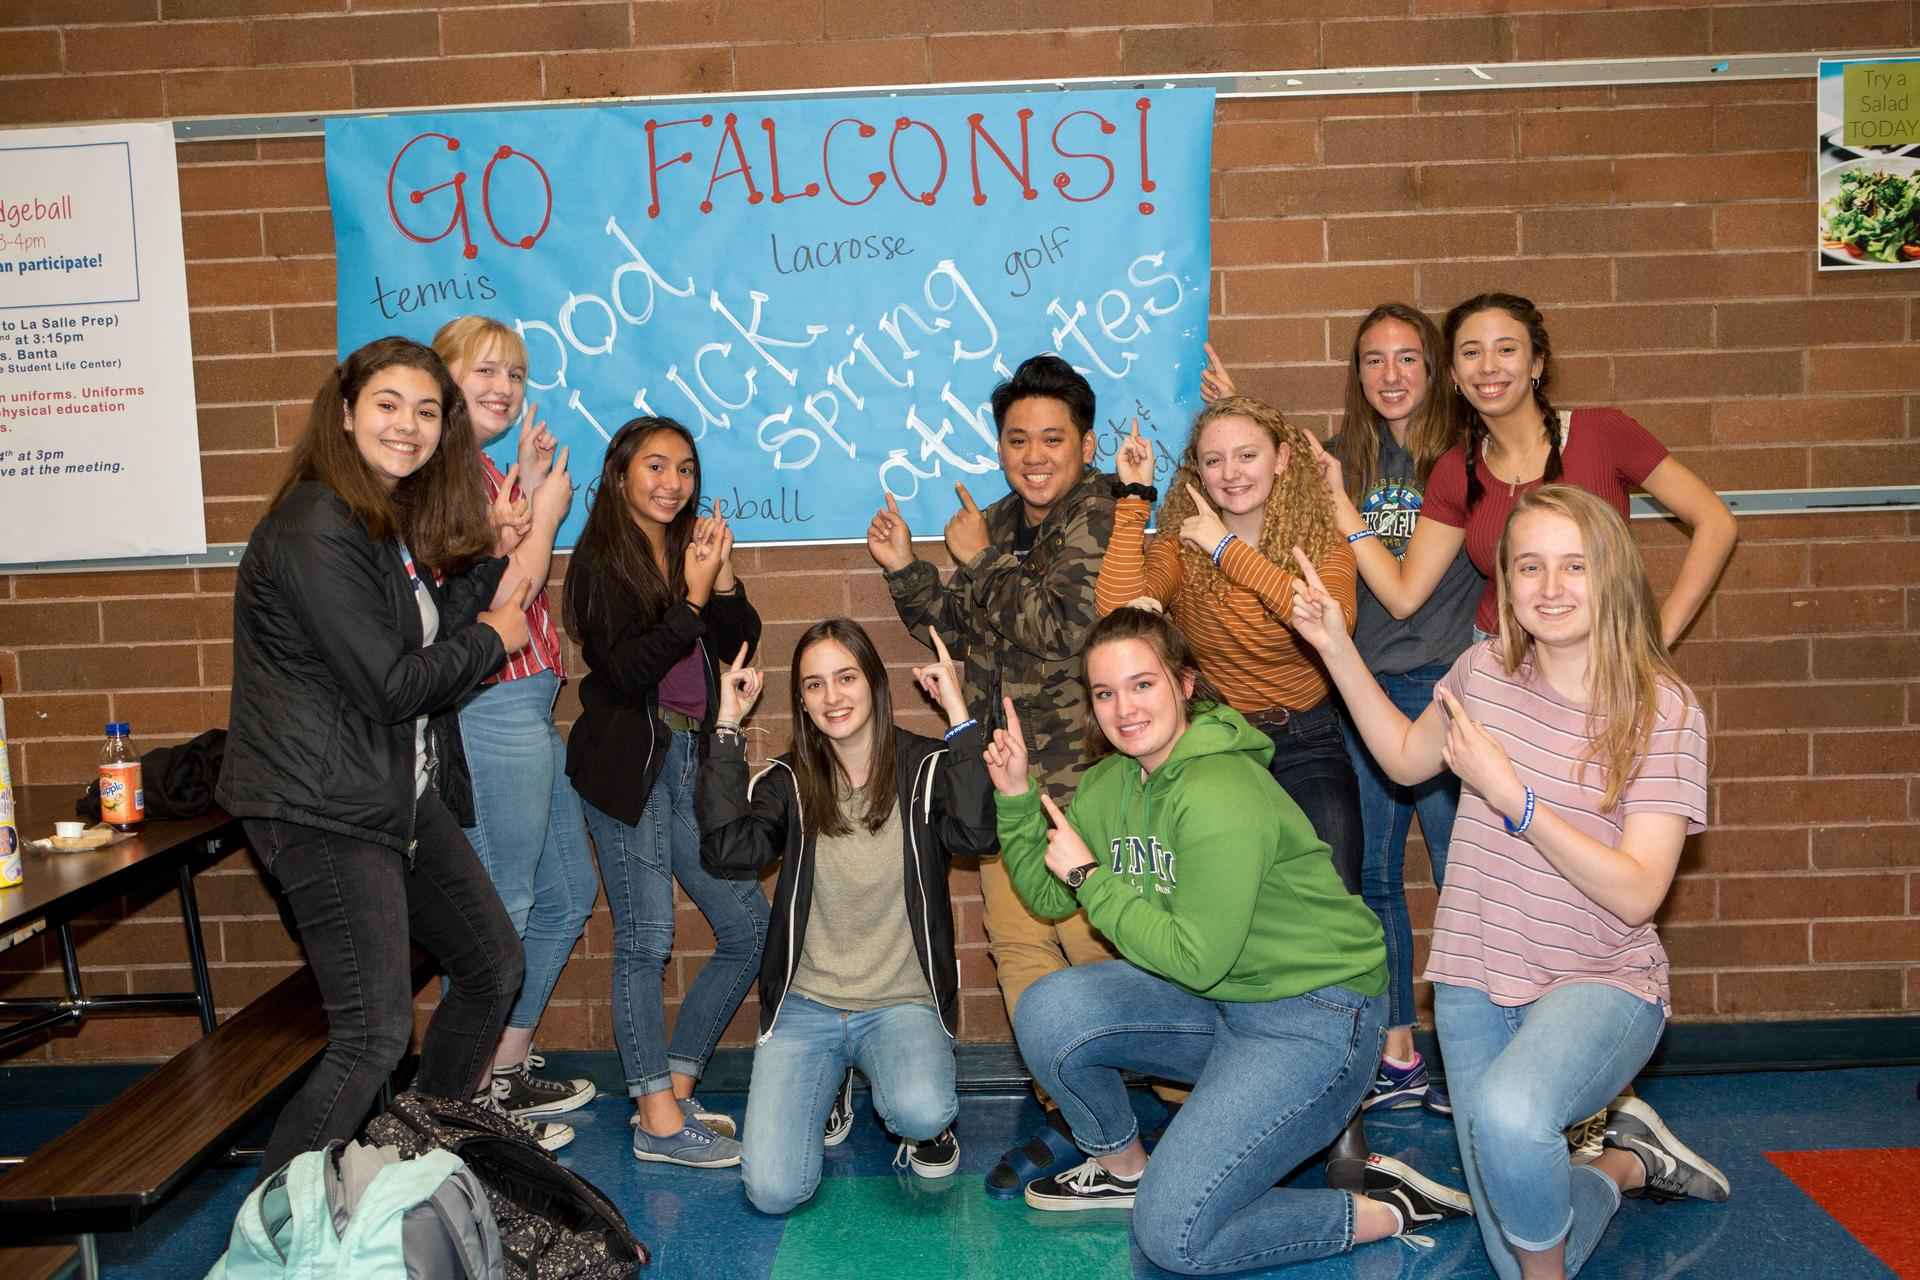 group of students pointing at Go Falcons sign